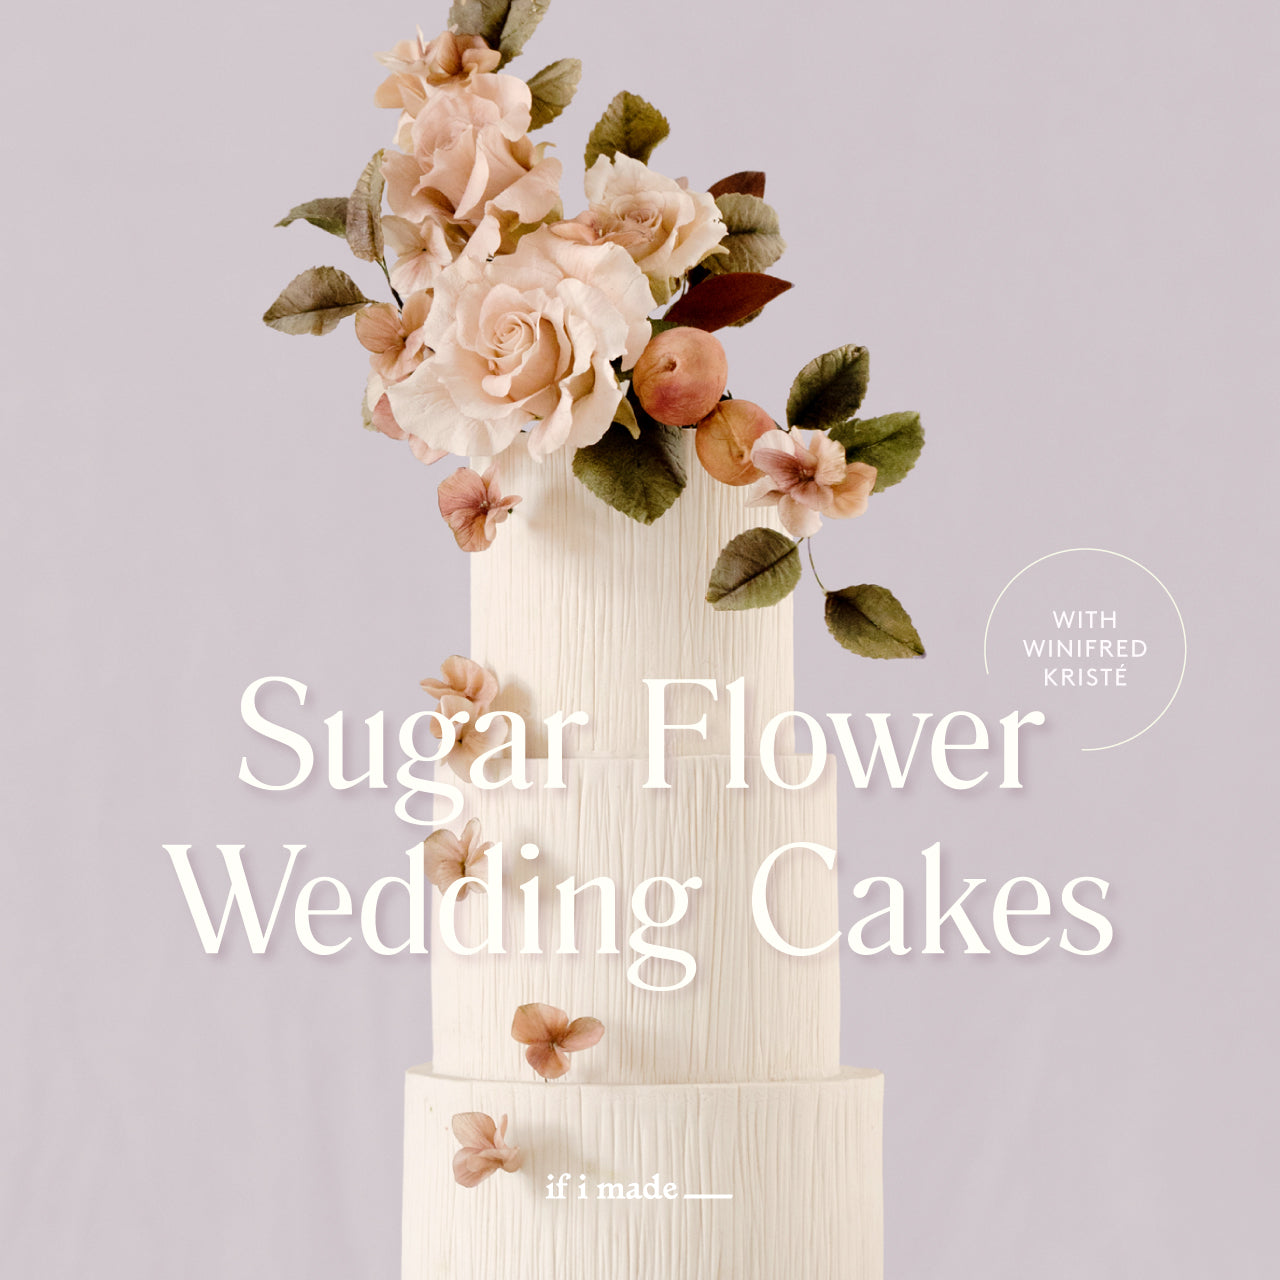 Sugar Flower Wedding Cakes with Winifred Kristé Cake